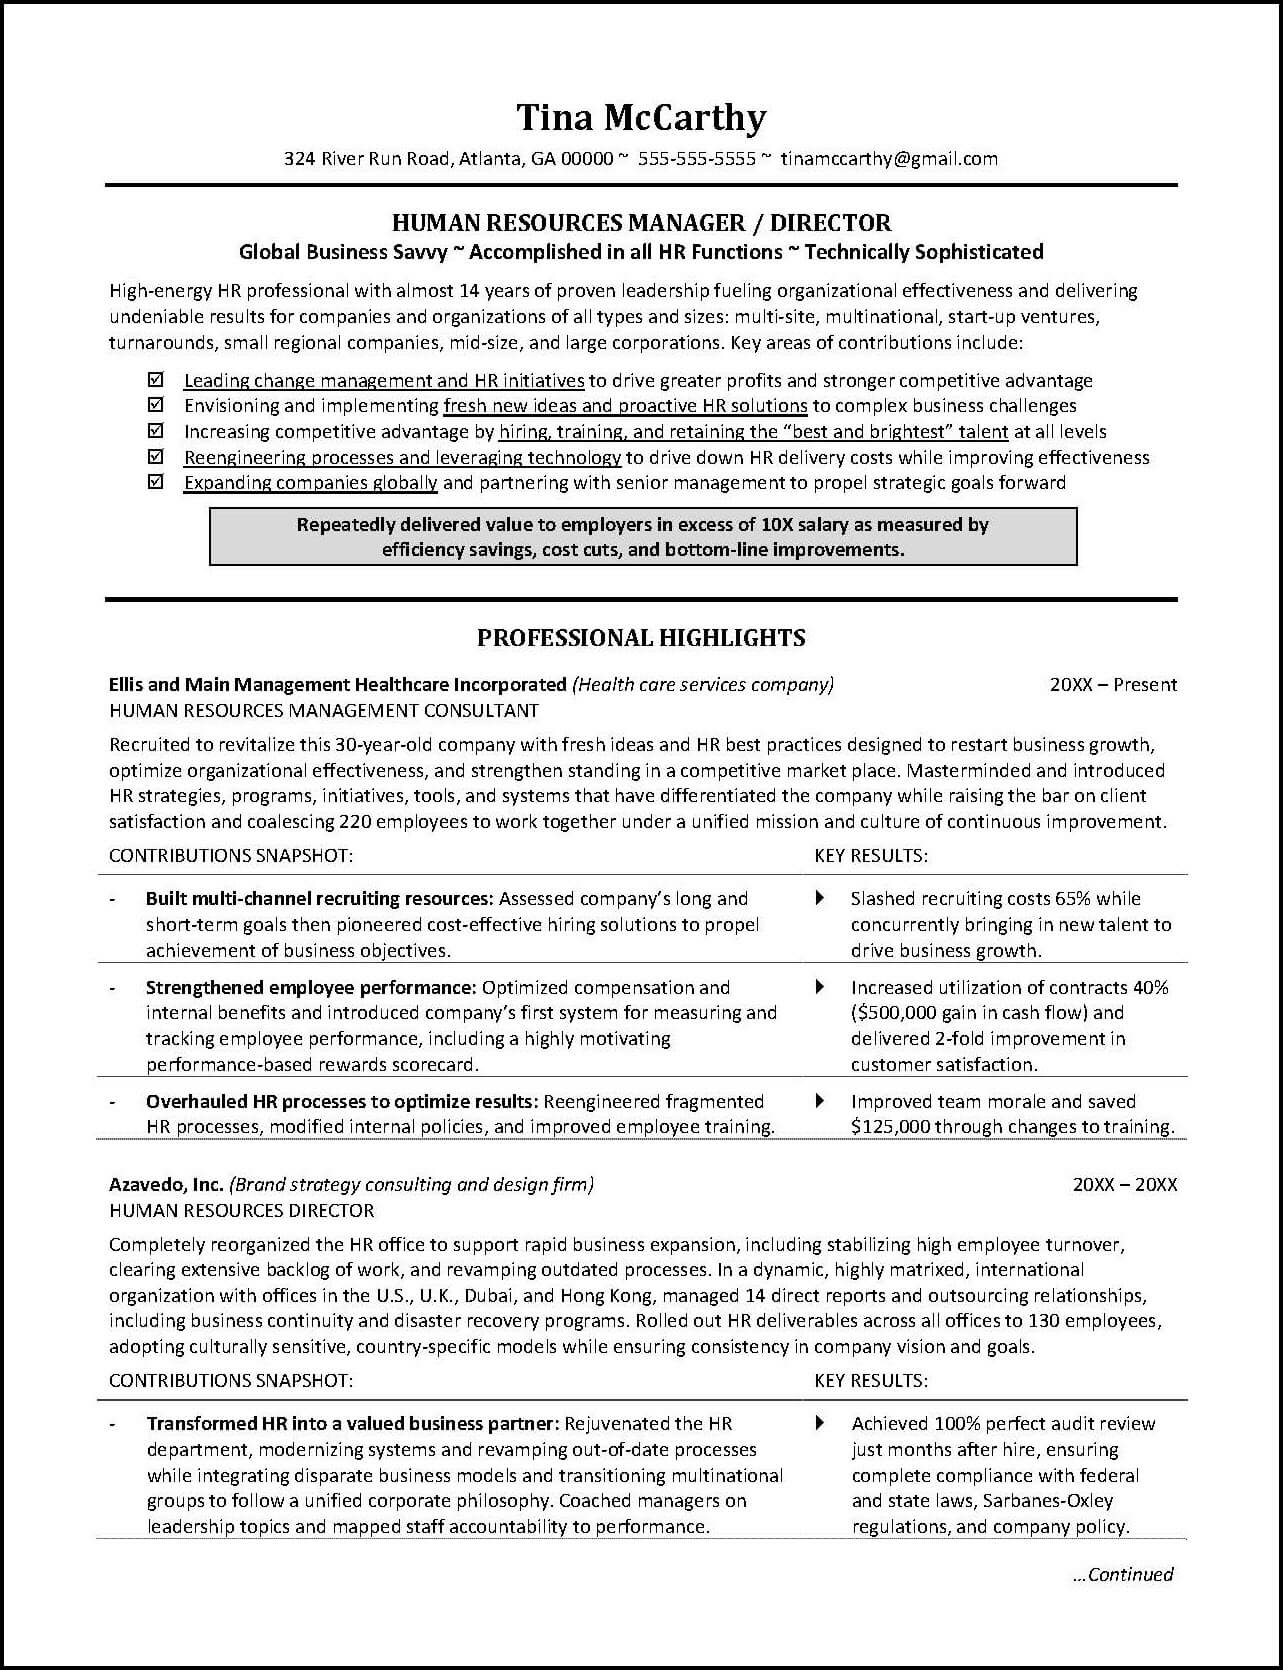 powerful human resources resume example - human resources resume page